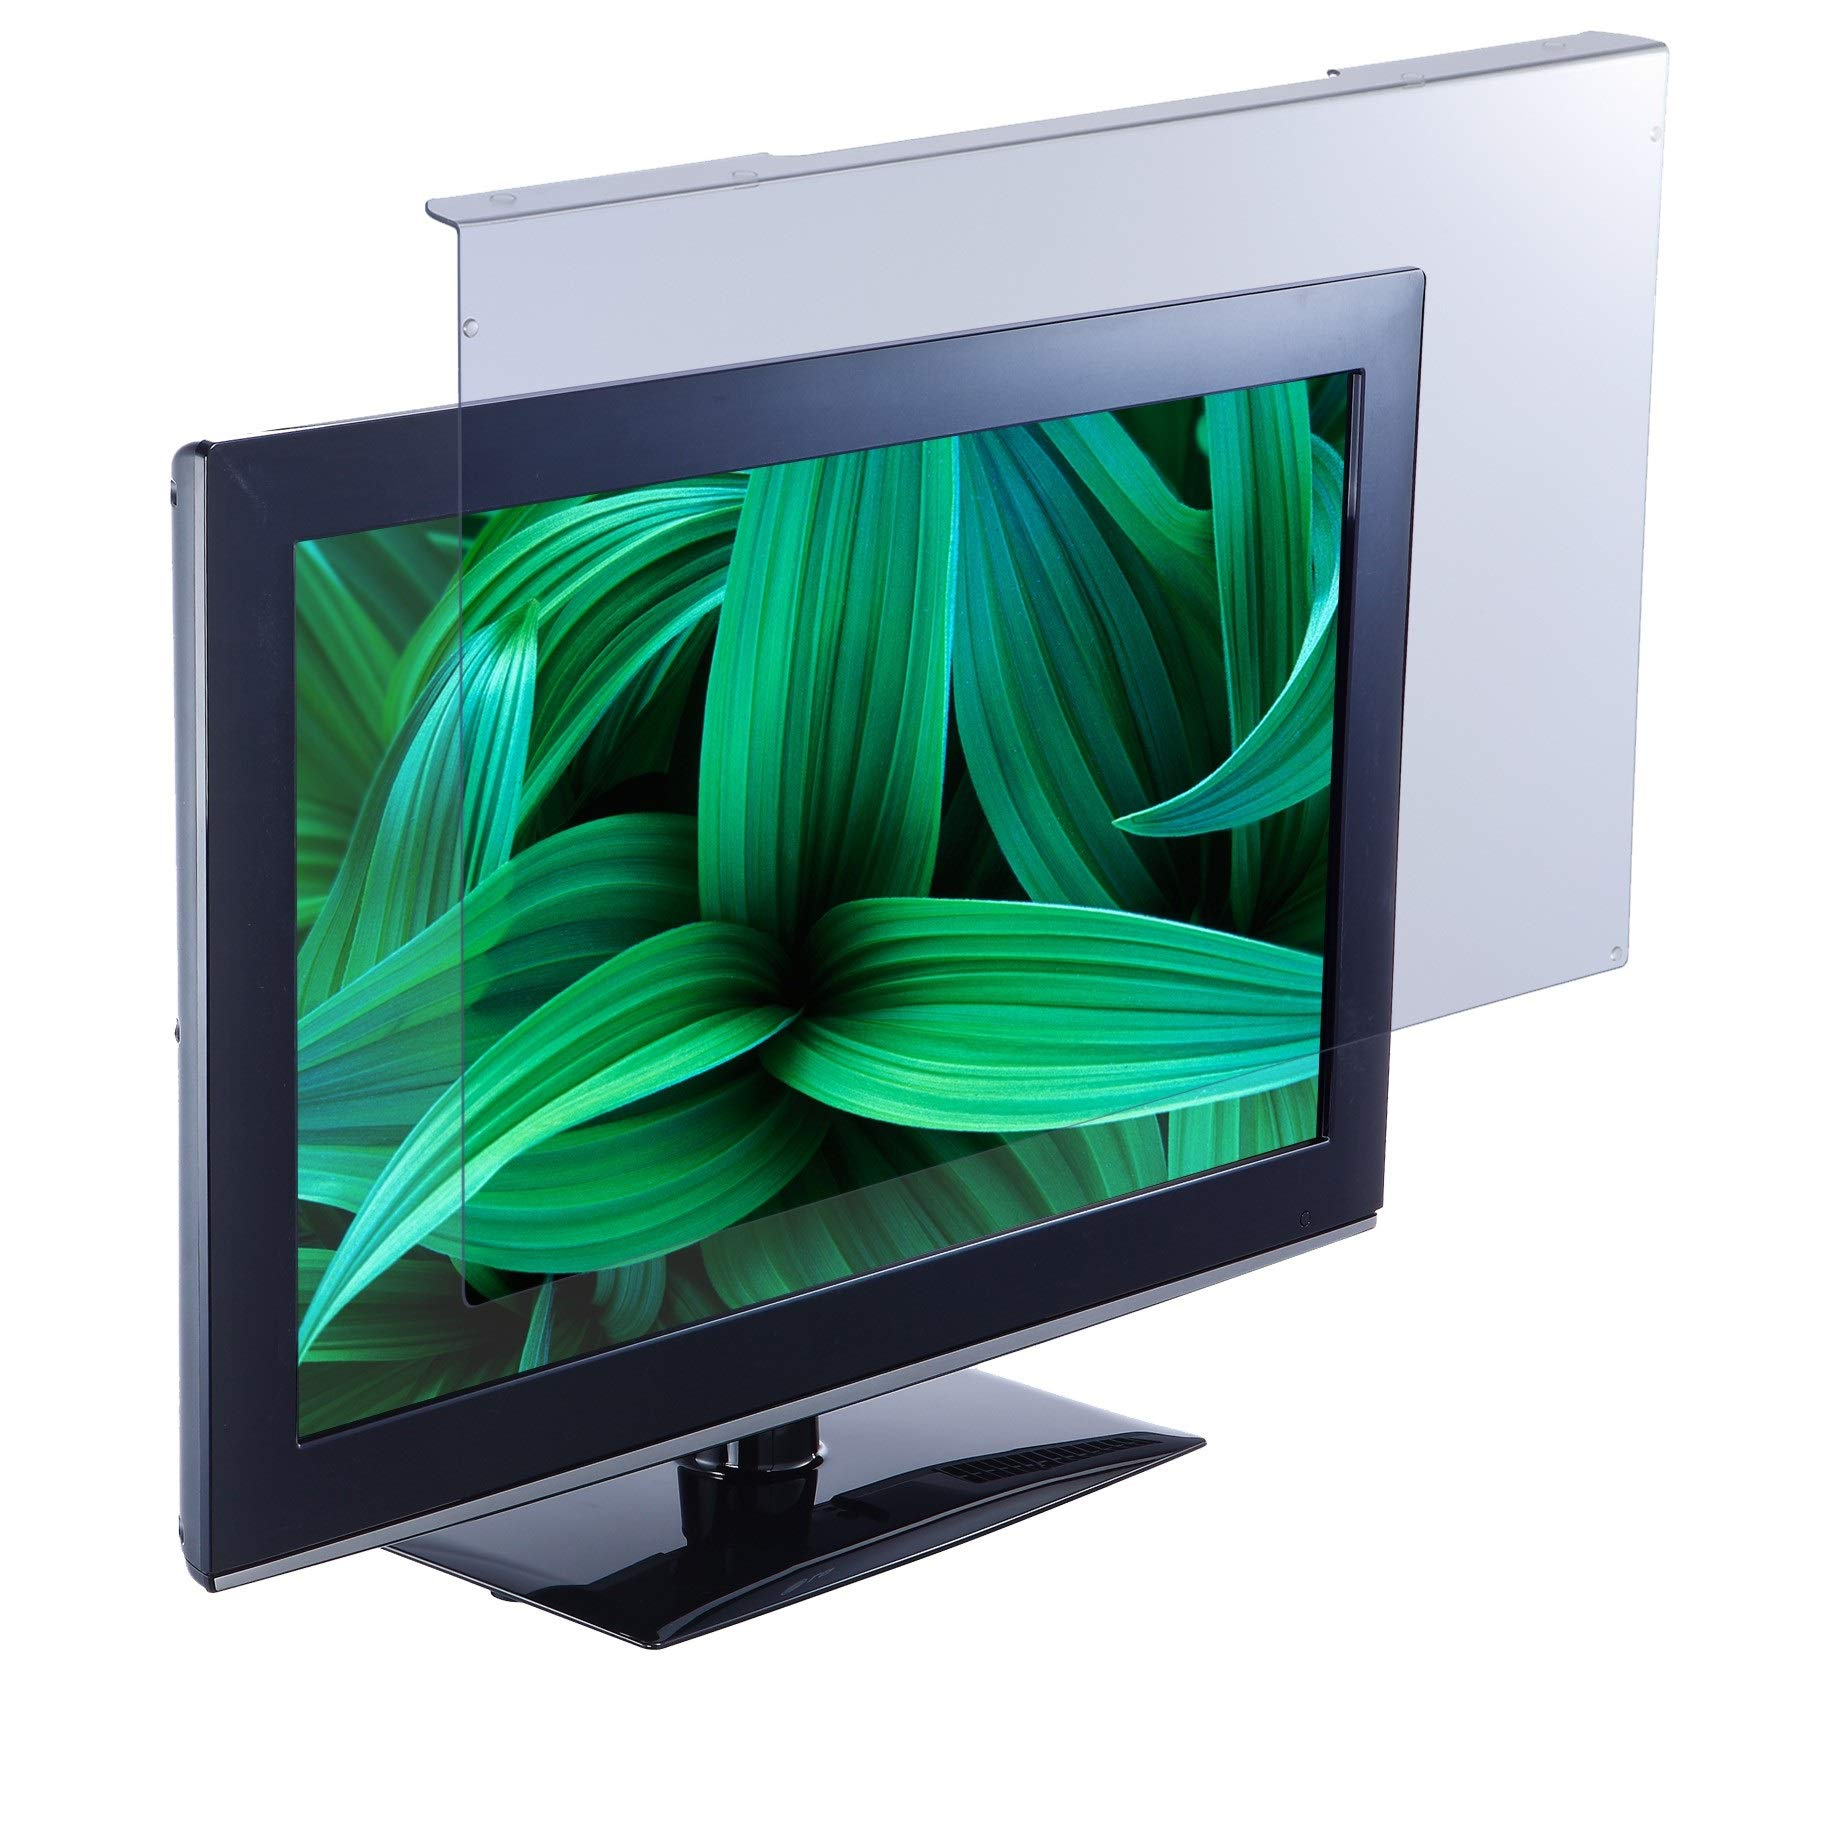 """EYES PC blue light screen protector panel for 26""""-28"""" Diag. LED PC monitor (W 24.80"""" X H 15.55""""). Blue light blocking up to 100 percent of HEV blue light from LED screens. Reduces digital eye strain!"""